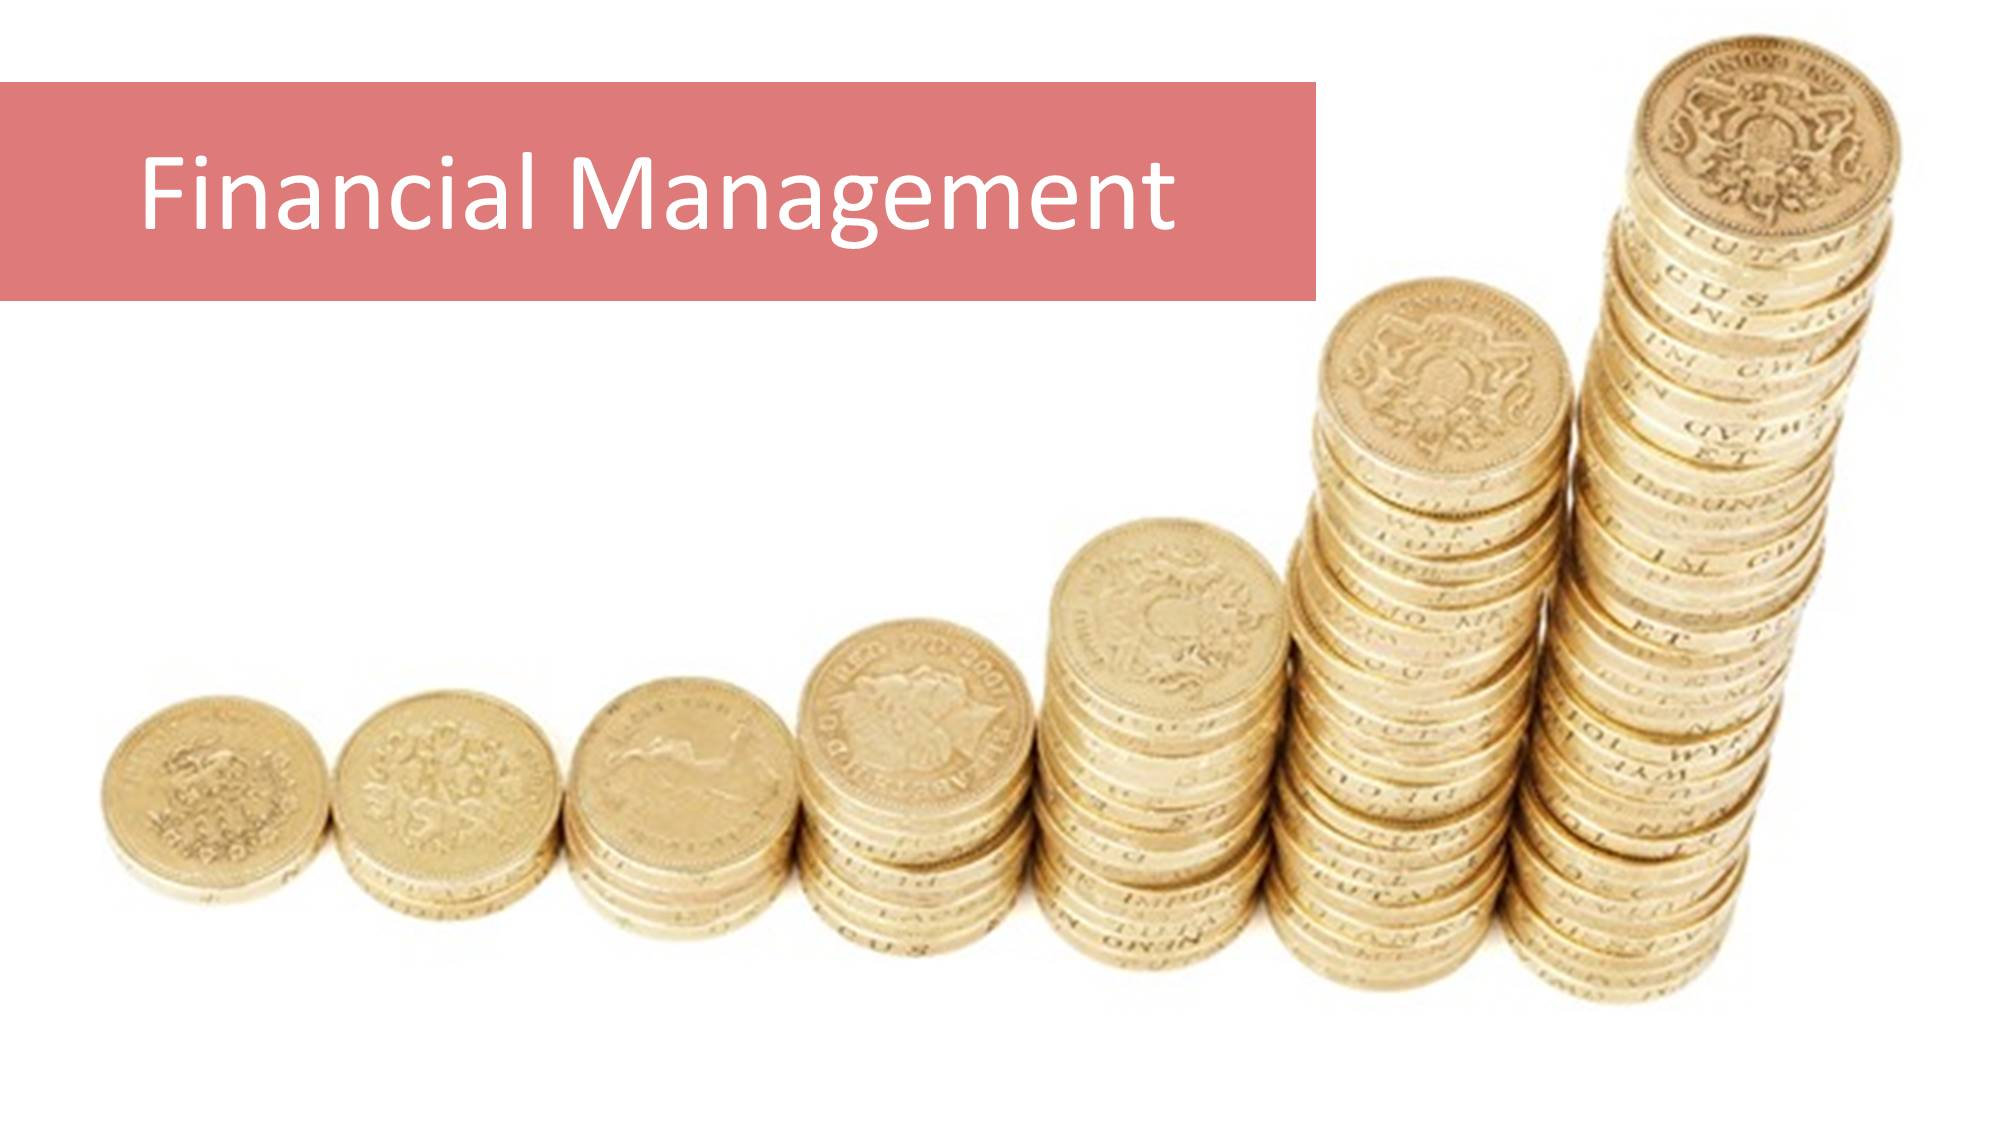 509-featured-image ITIL Financial Management for IT services: Is Finance Part of Your Service Strategy?